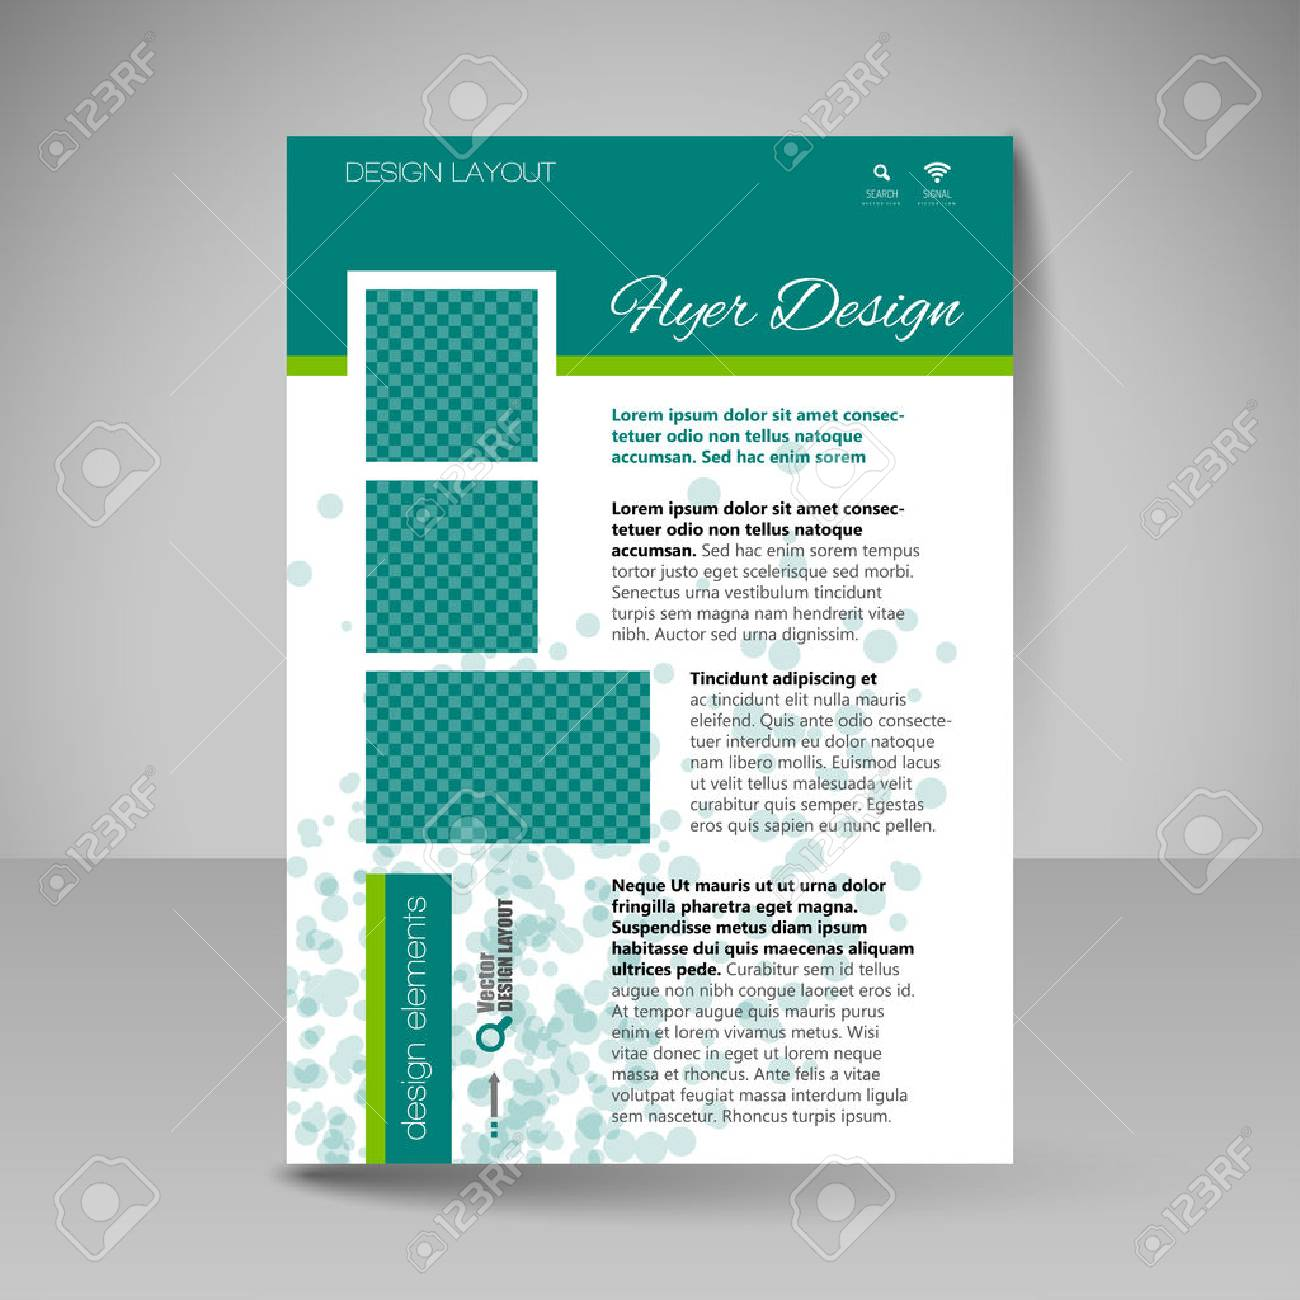 Template For Brochure Or Flyer Editable Site For Business - Travel guide brochure template